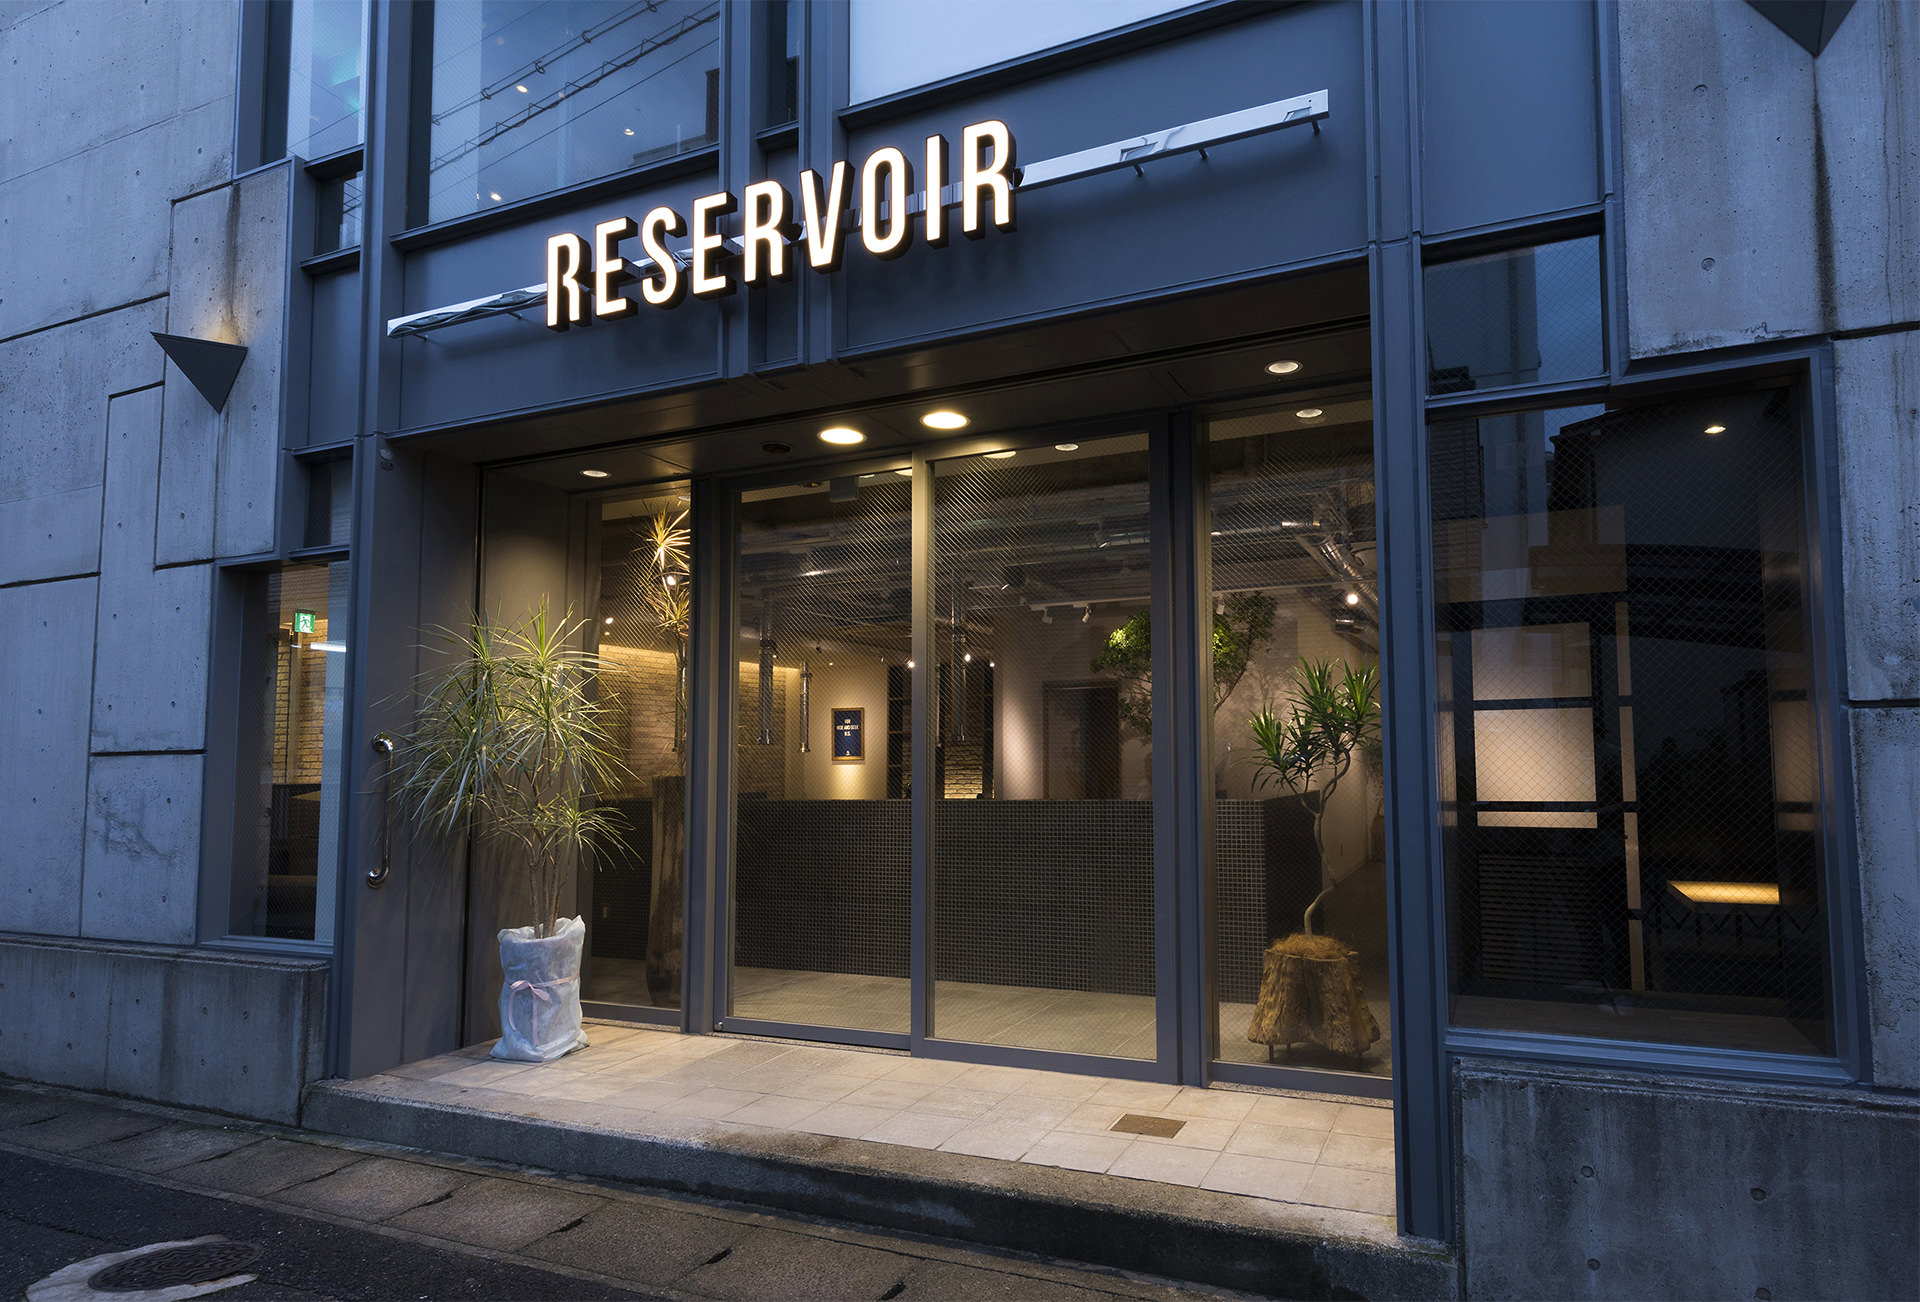 160709_RESERVOIR_s001_w1920_mini